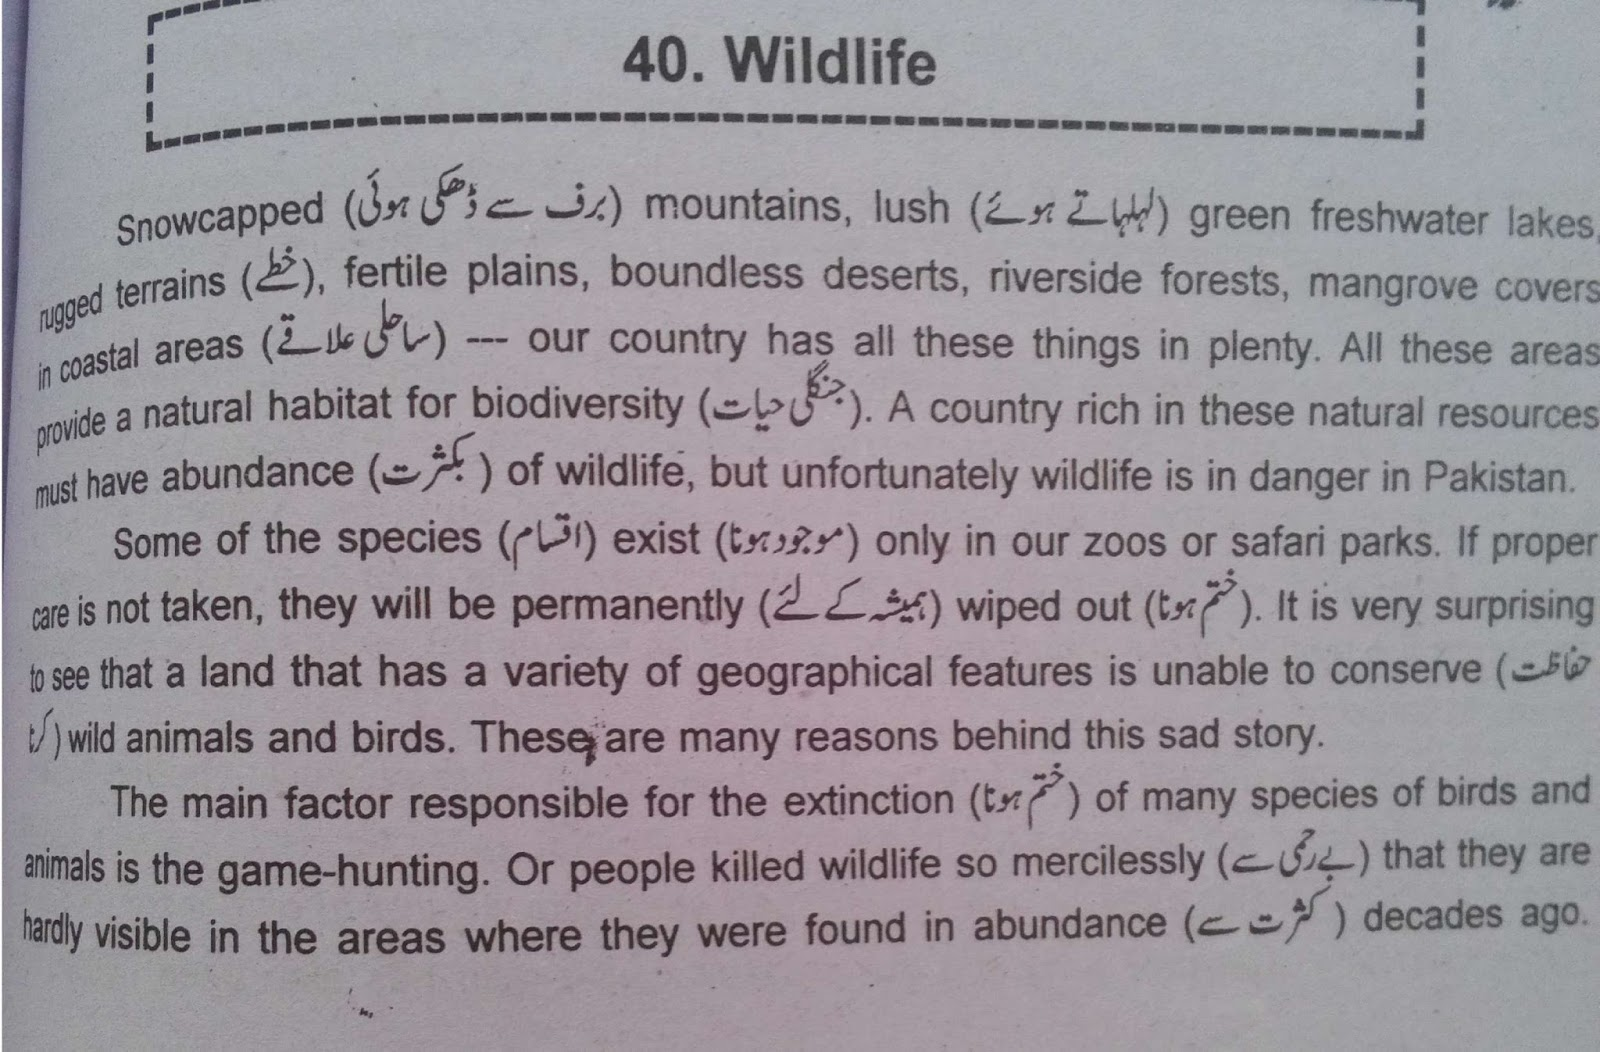 wild life essay in english for primary to higher classes  essay on save wildlife 150 words essay on wildlife and its importance protection of